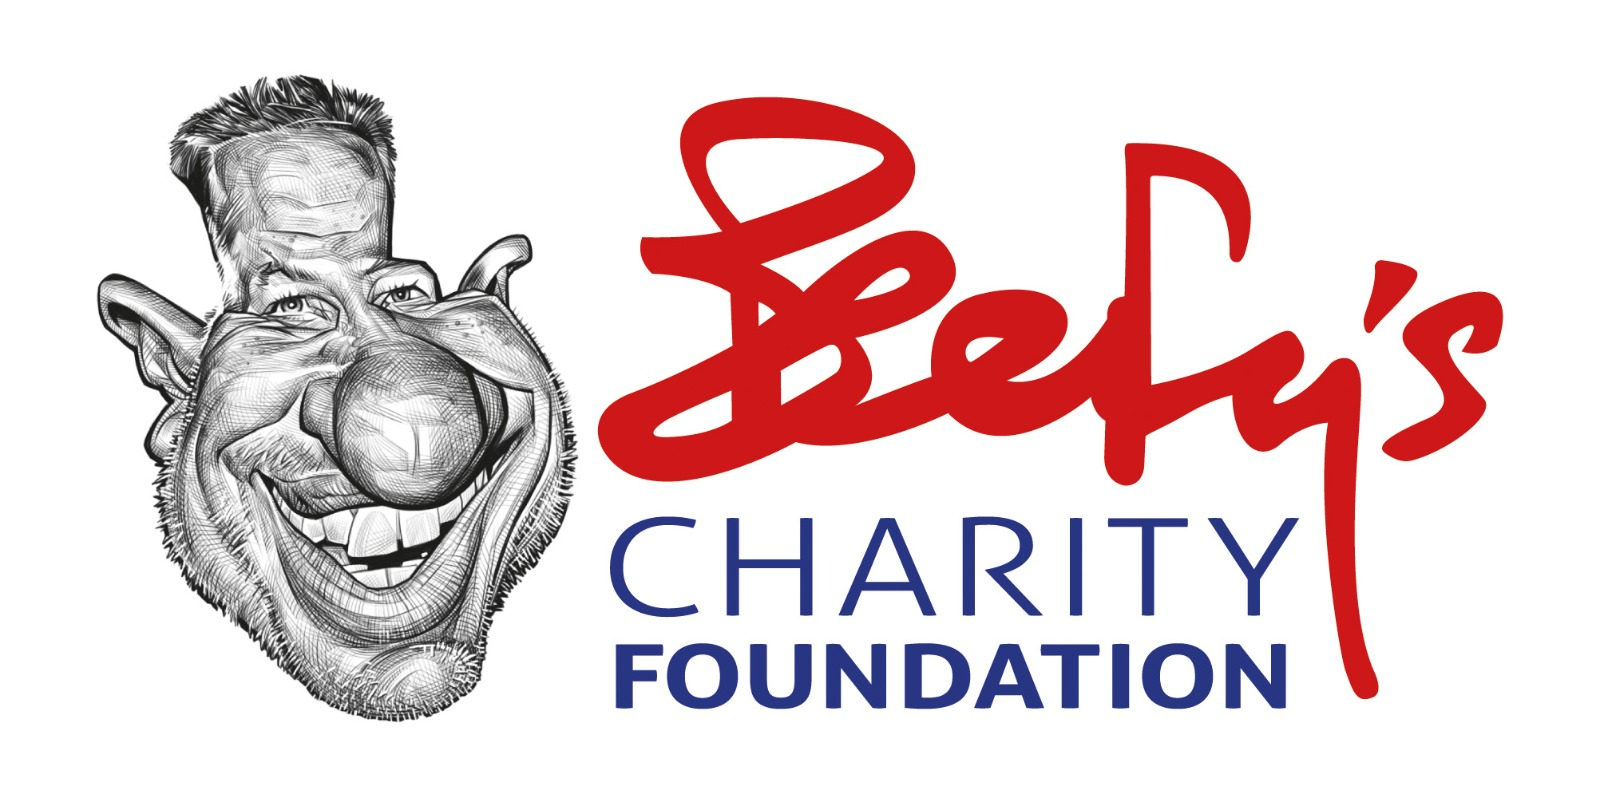 Beefy's Charity Foundtation